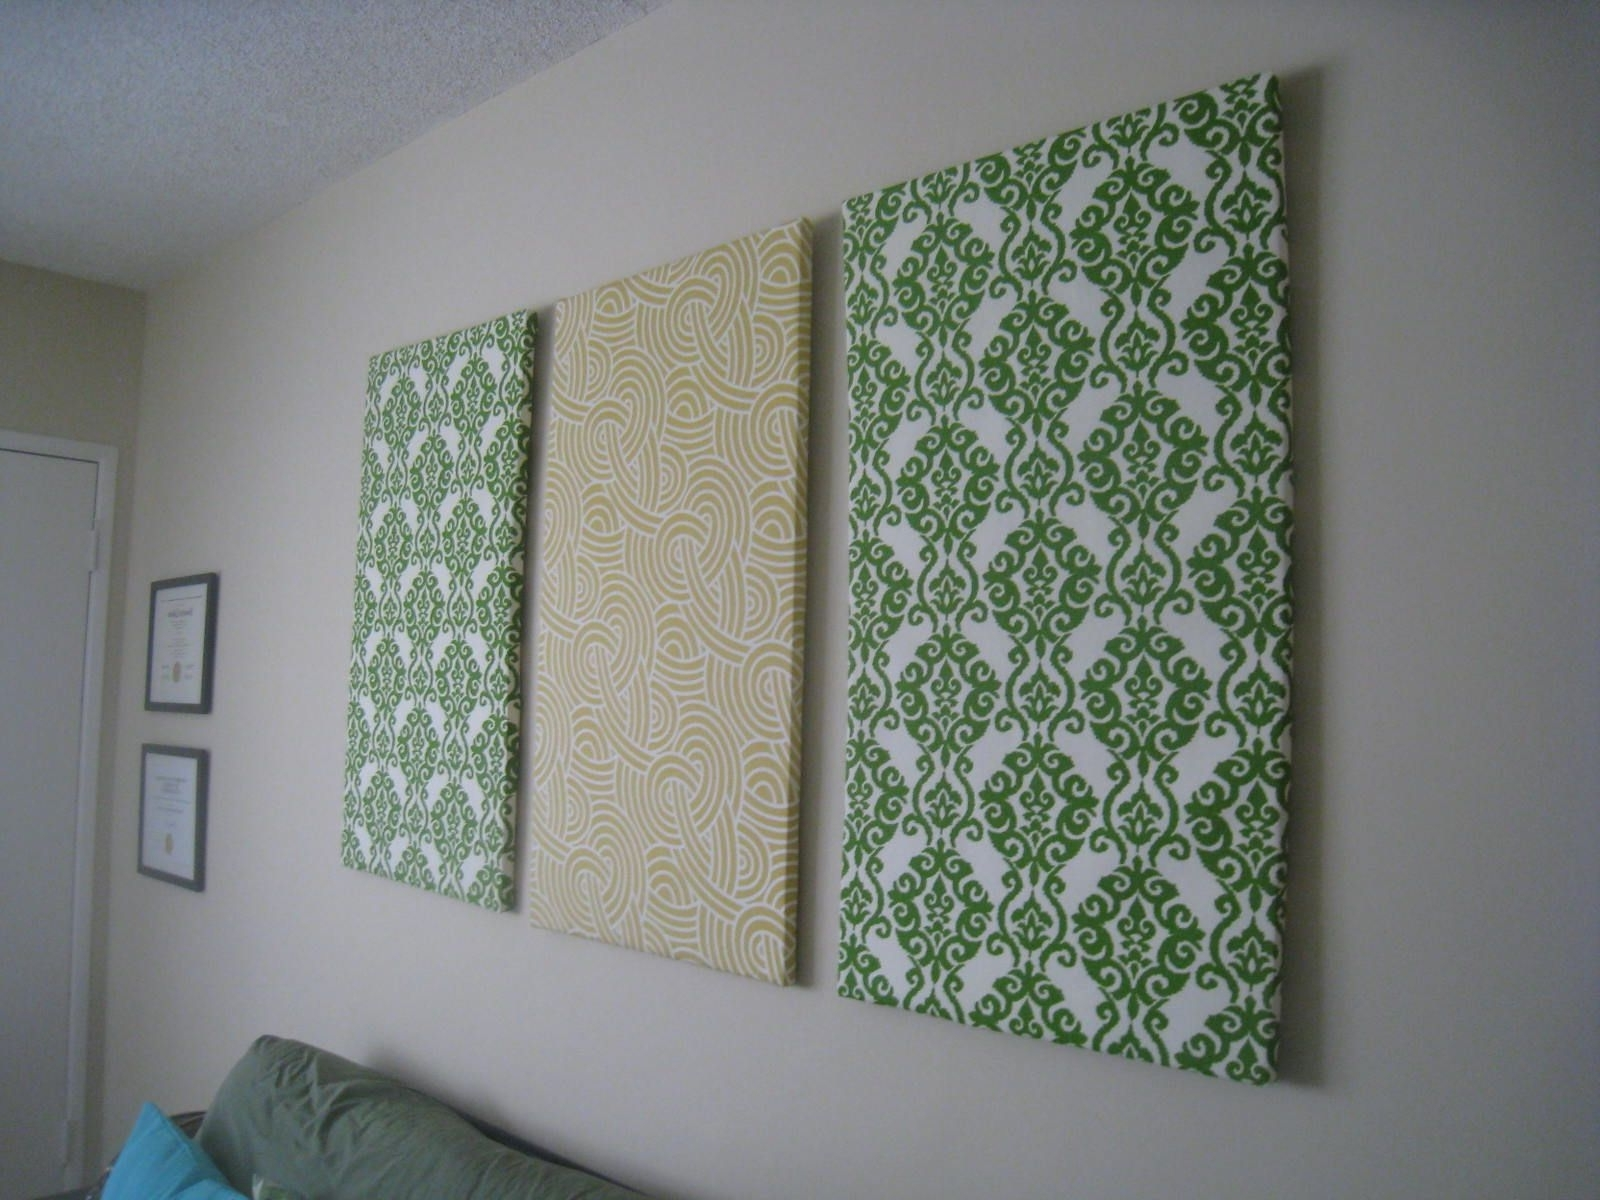 Fabric Wall Art With Regard To Most Recently Released Diy Fabric Wall Art (View 8 of 15)